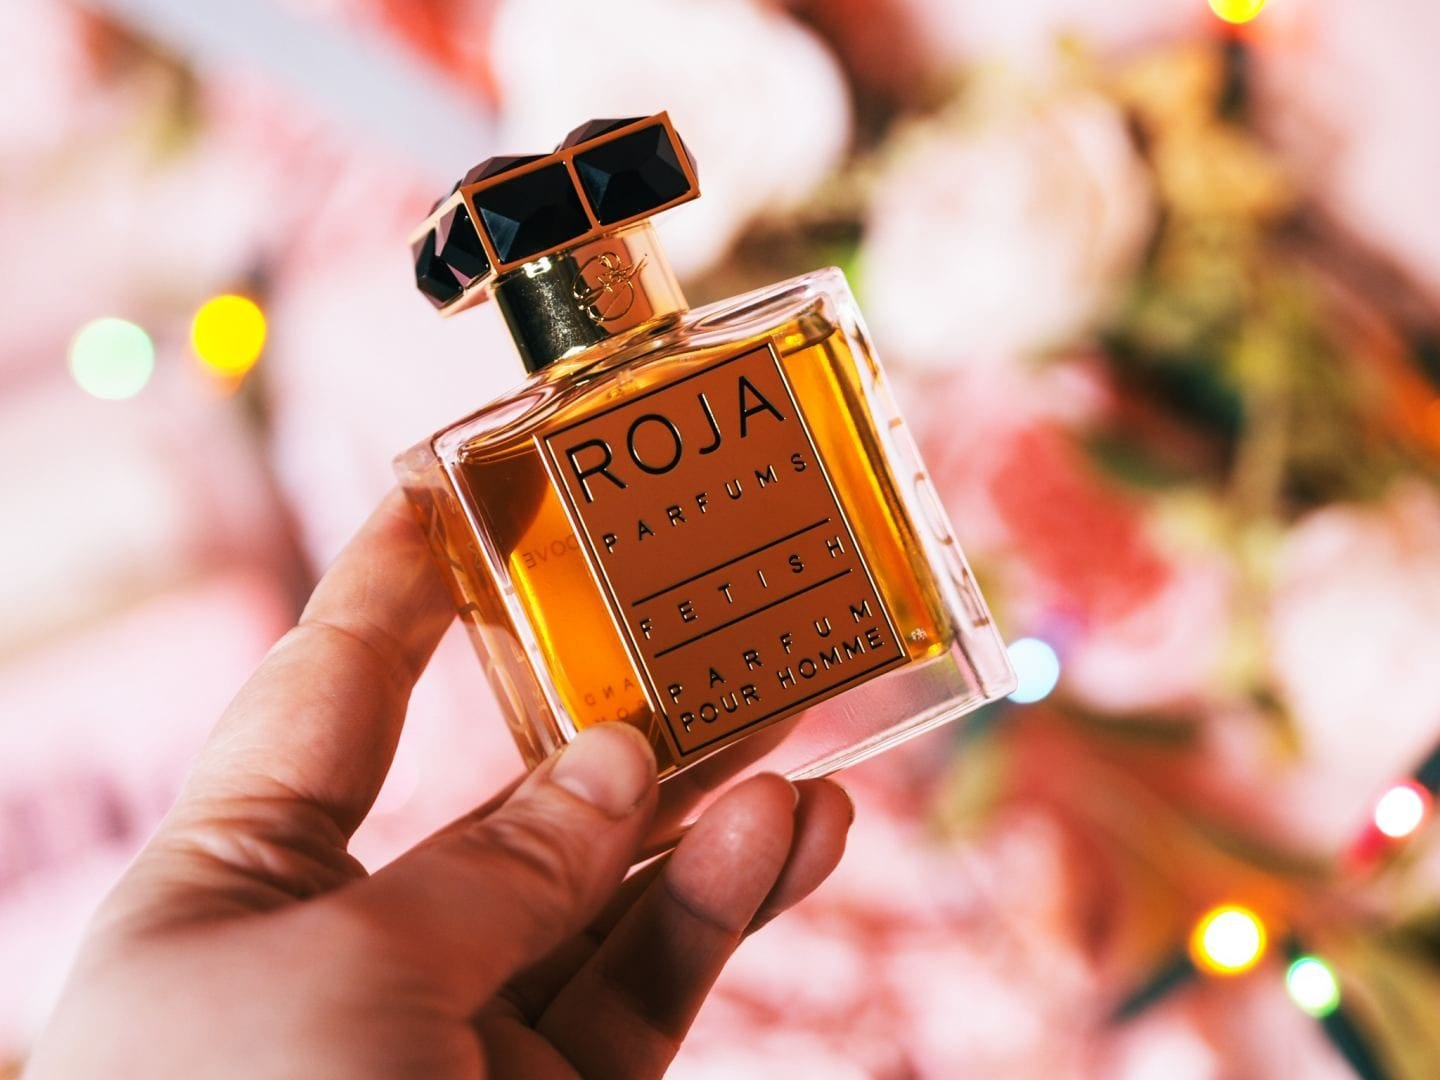 Let's Talk About 'Fetish'… It's A Fragrance by Roja Parfums, Don't Get Nervous!